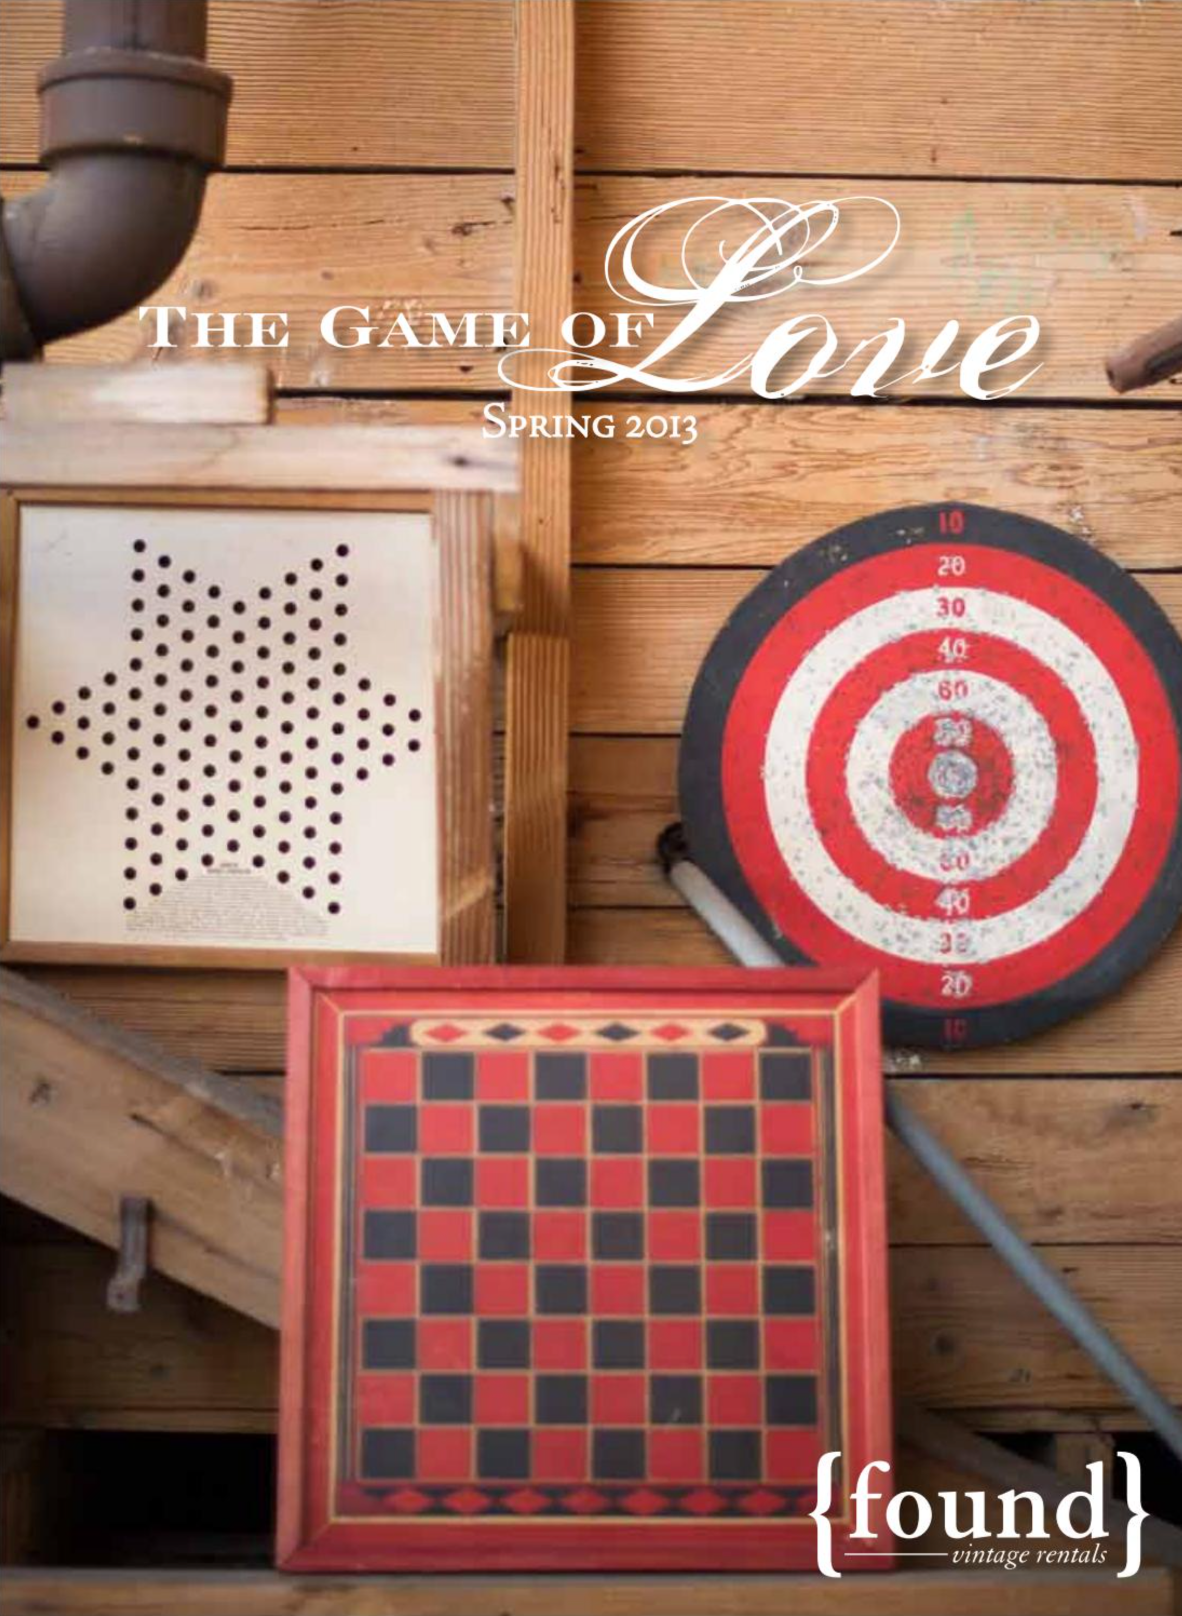 THE GAME OF LOVE //  SPRING 2013